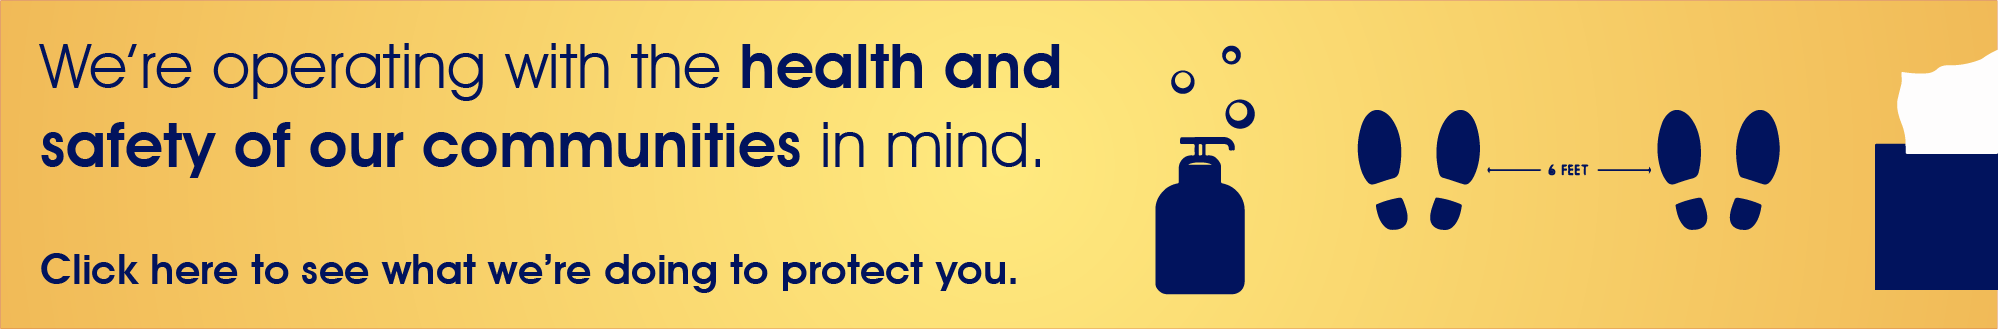 We're operating with the health and safety of our communities in mind. Click here to see what we're doing to protect you.